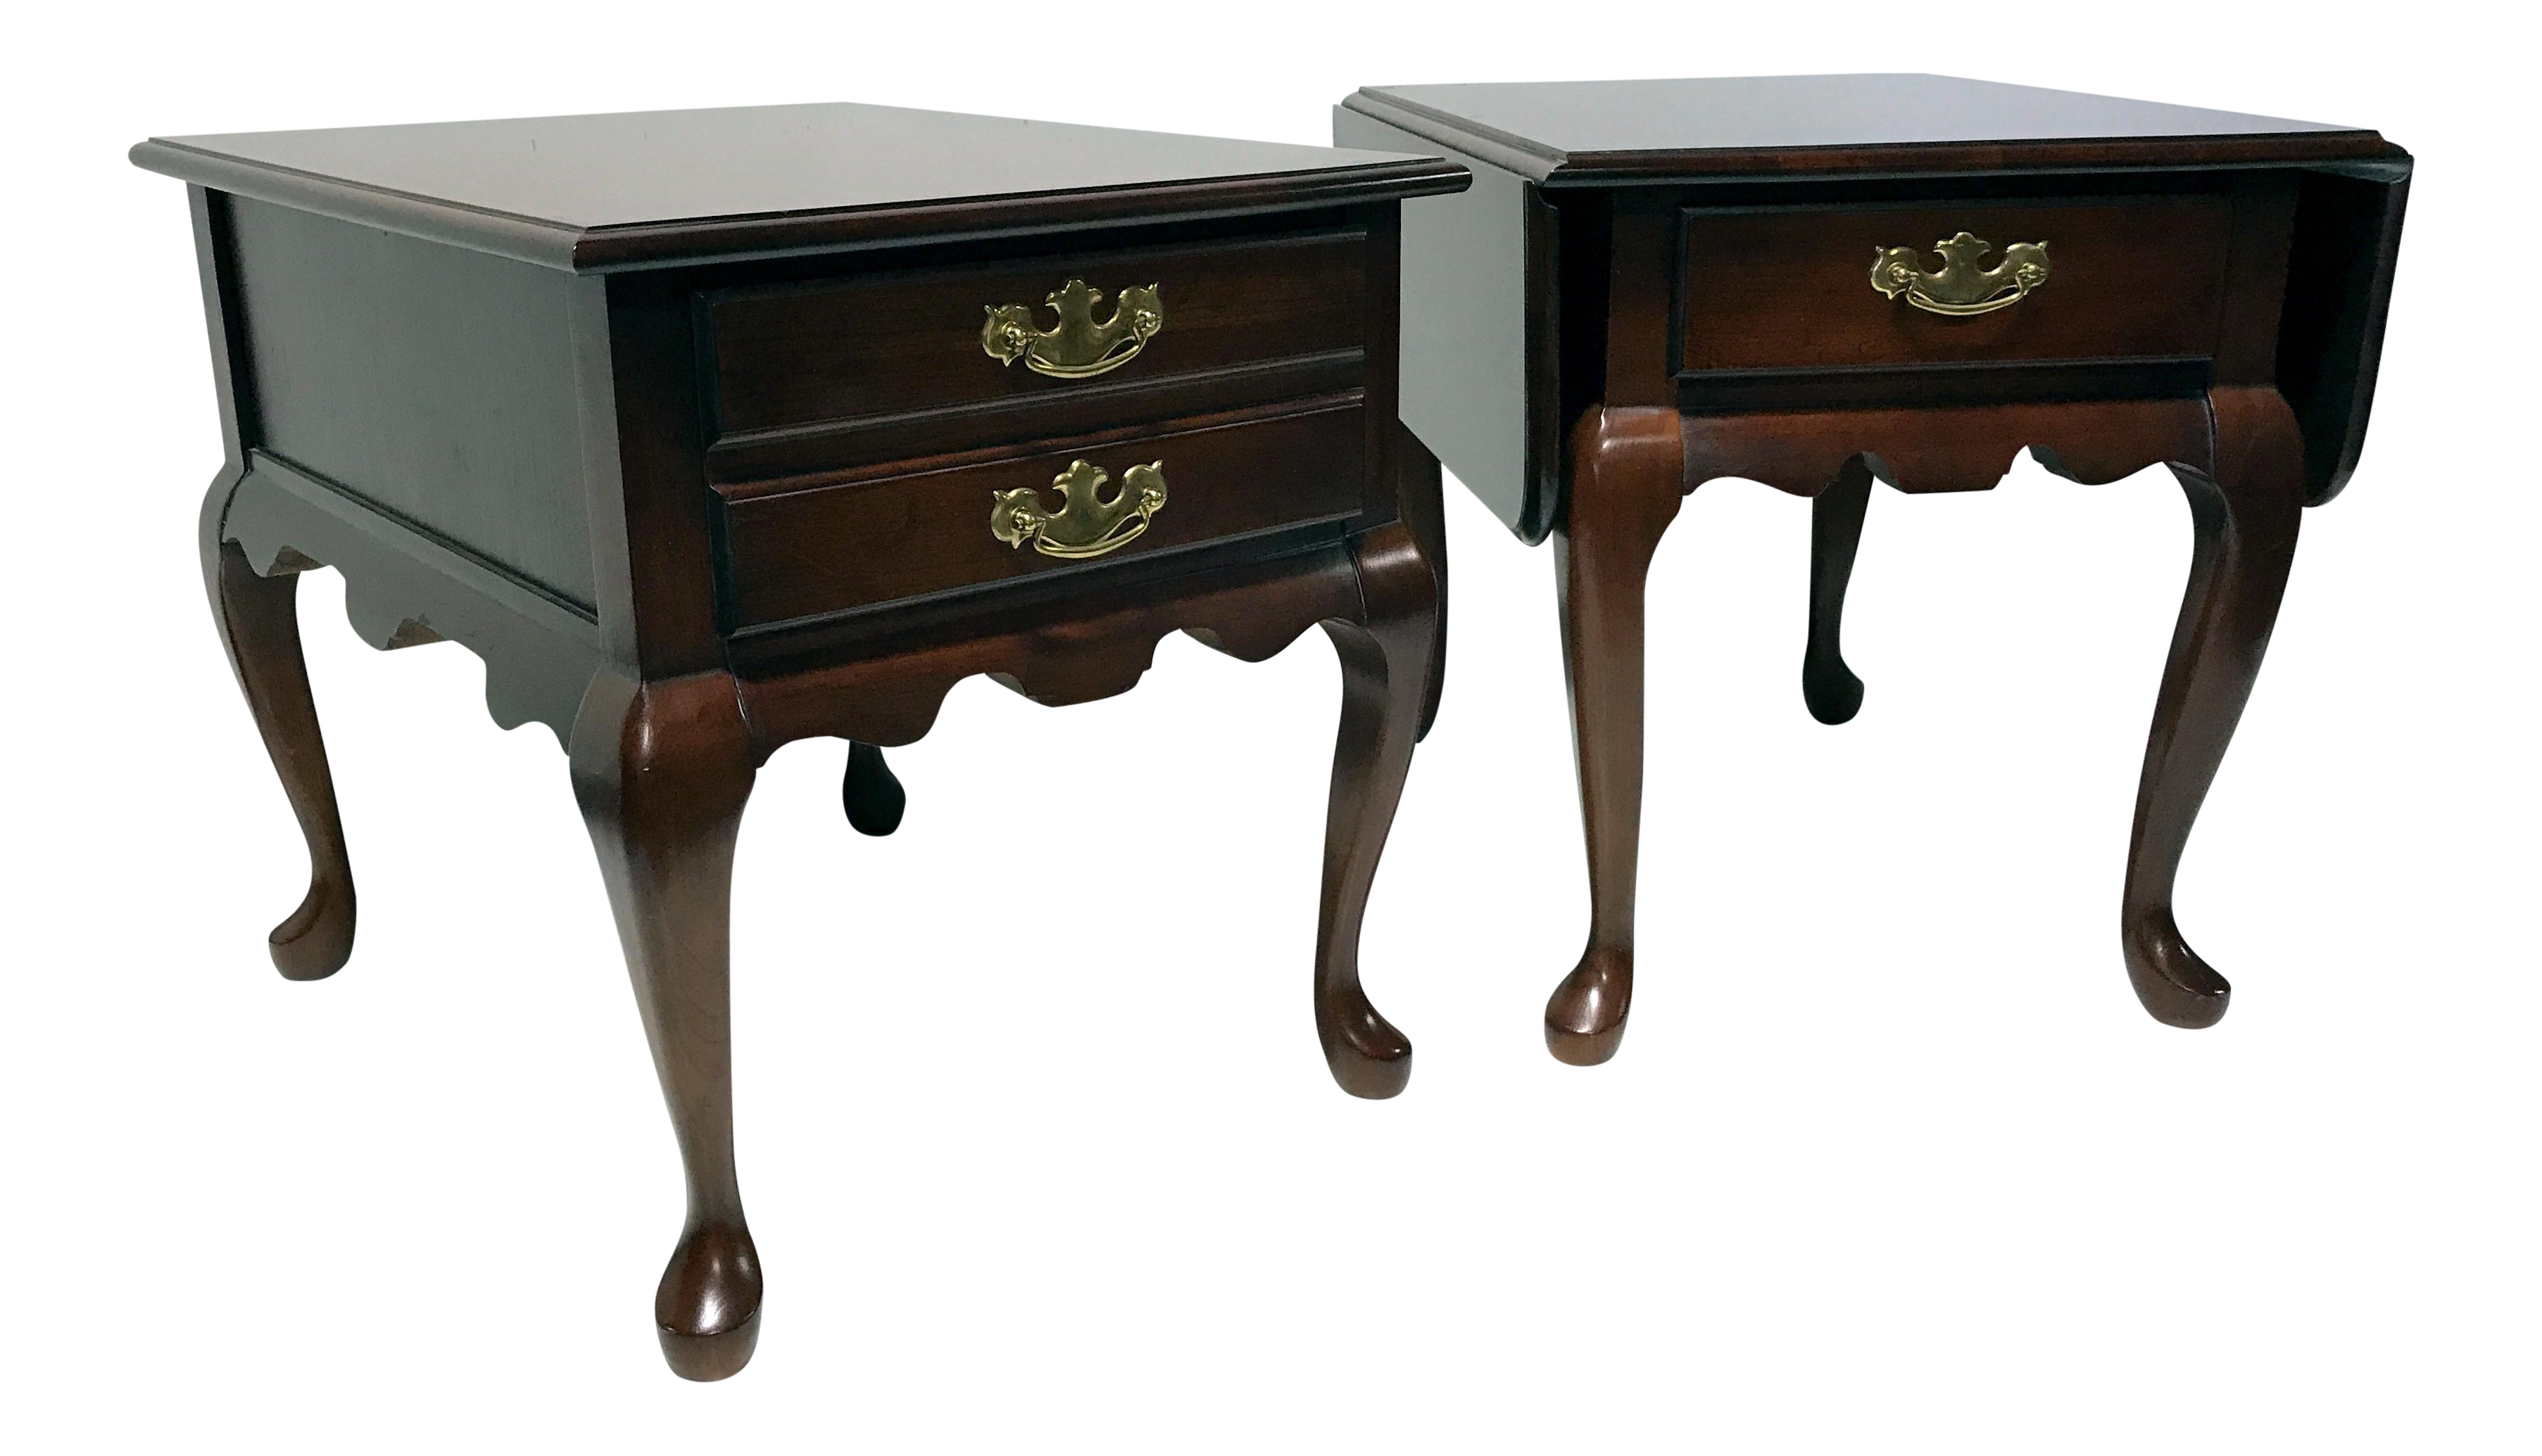 ethan allen pedestal end table tops delwood solid cherry queen anne style side tables chairish with drawer rustic dresser cross leg bedside short refrigerators lamps for bedroom